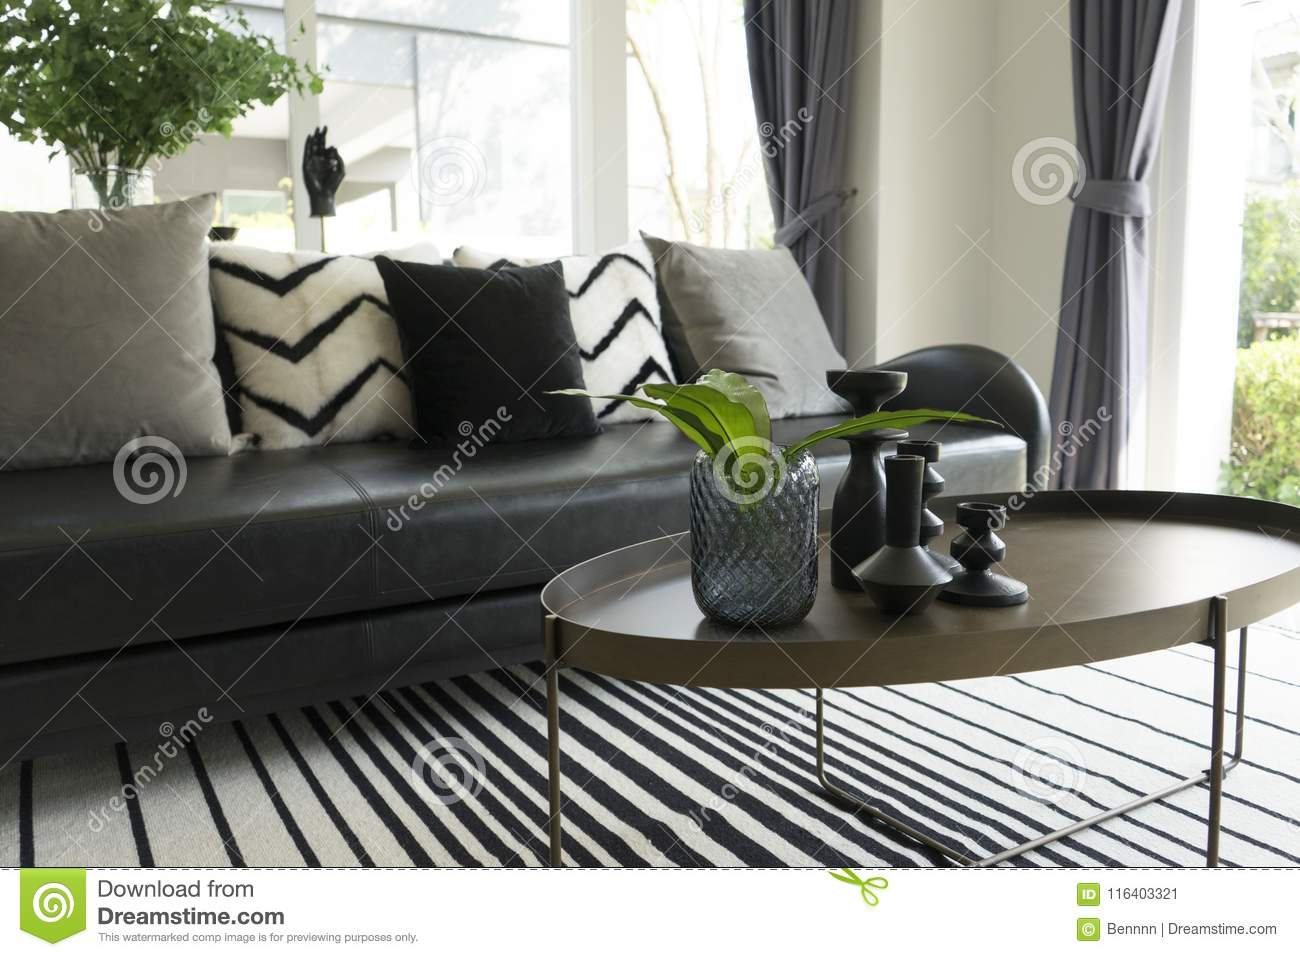 Picture of: Modern Vase And Green Leaf On Center Table With Black And White Pillows On Sofa Stock Image Image Of Design Interior 116403321